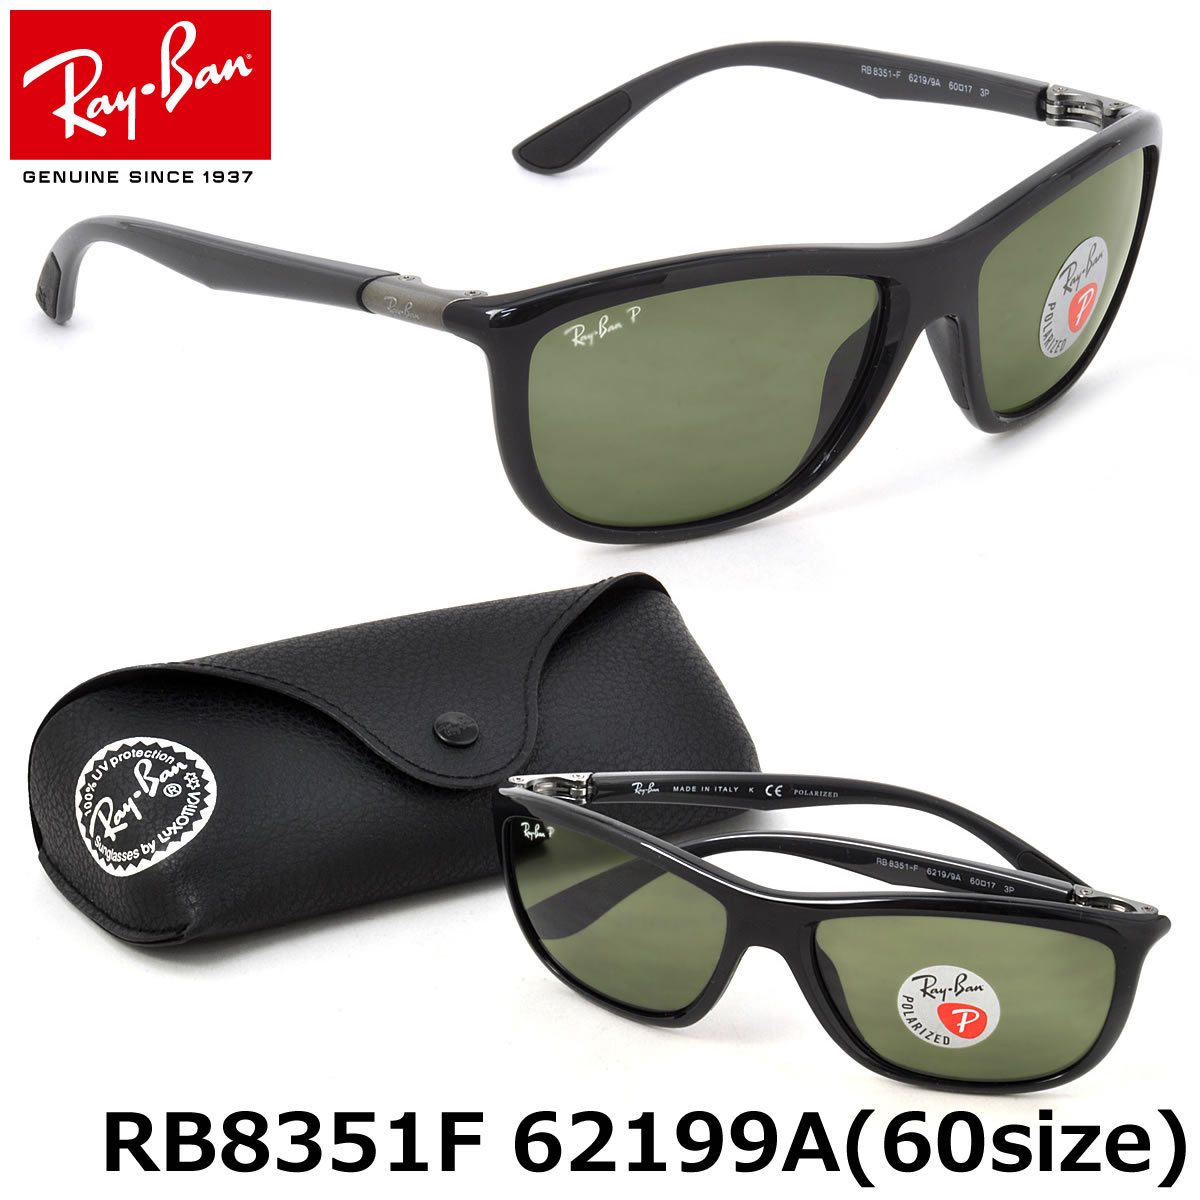 031eaef3b21 Ray-Ban TECH (laybuntek) combines modern technology with tradition of Ray- Ban collection of sunglasses. RB8351F features a high-performance ...